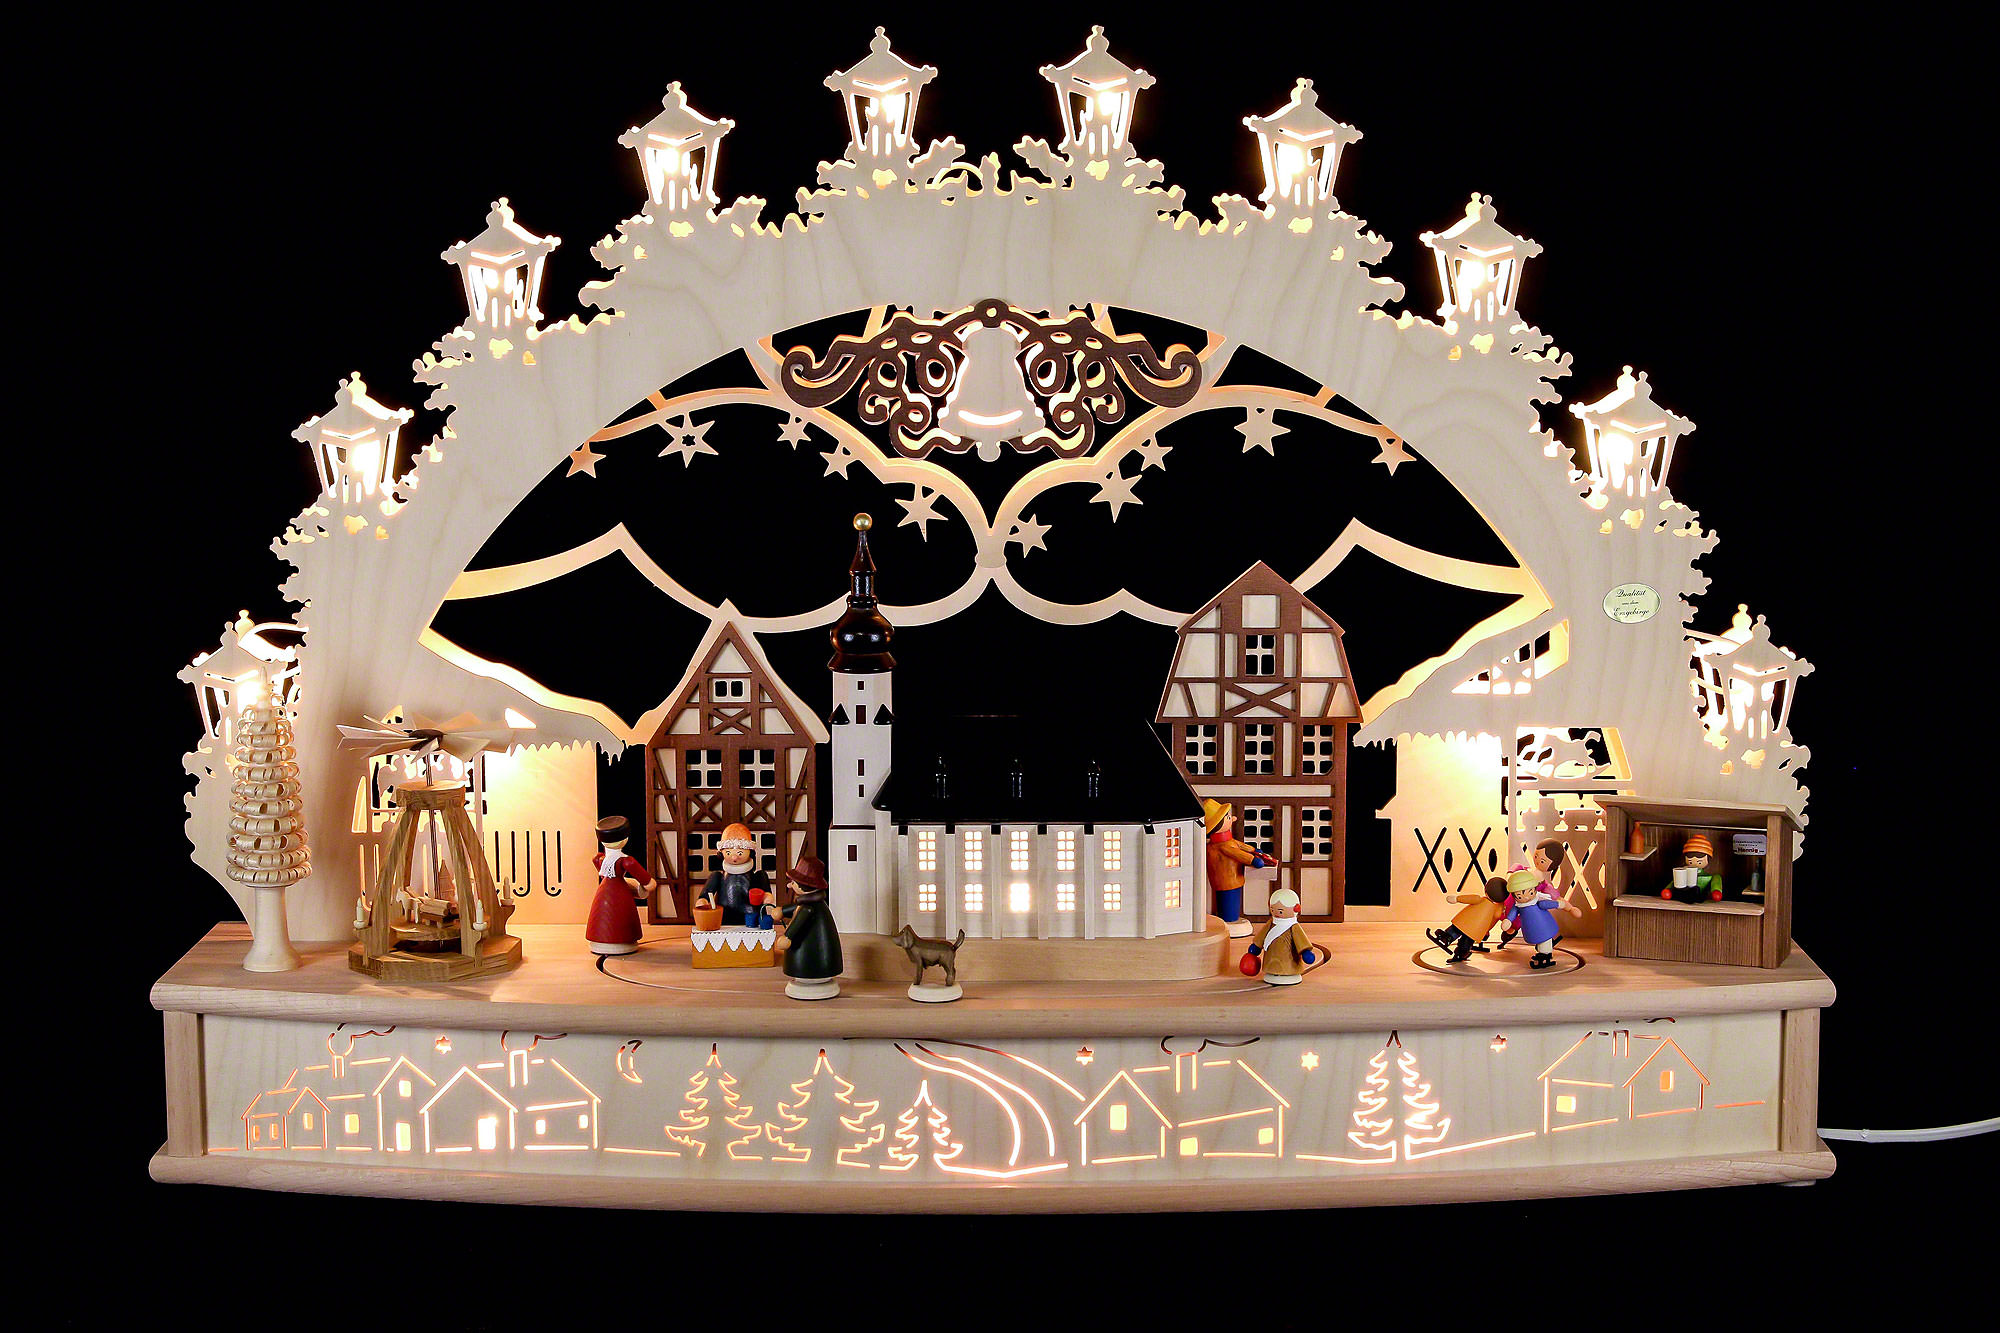 3d candle arch 39 christmas fair 39 68x46x17cm 27x18x7in ch. Black Bedroom Furniture Sets. Home Design Ideas